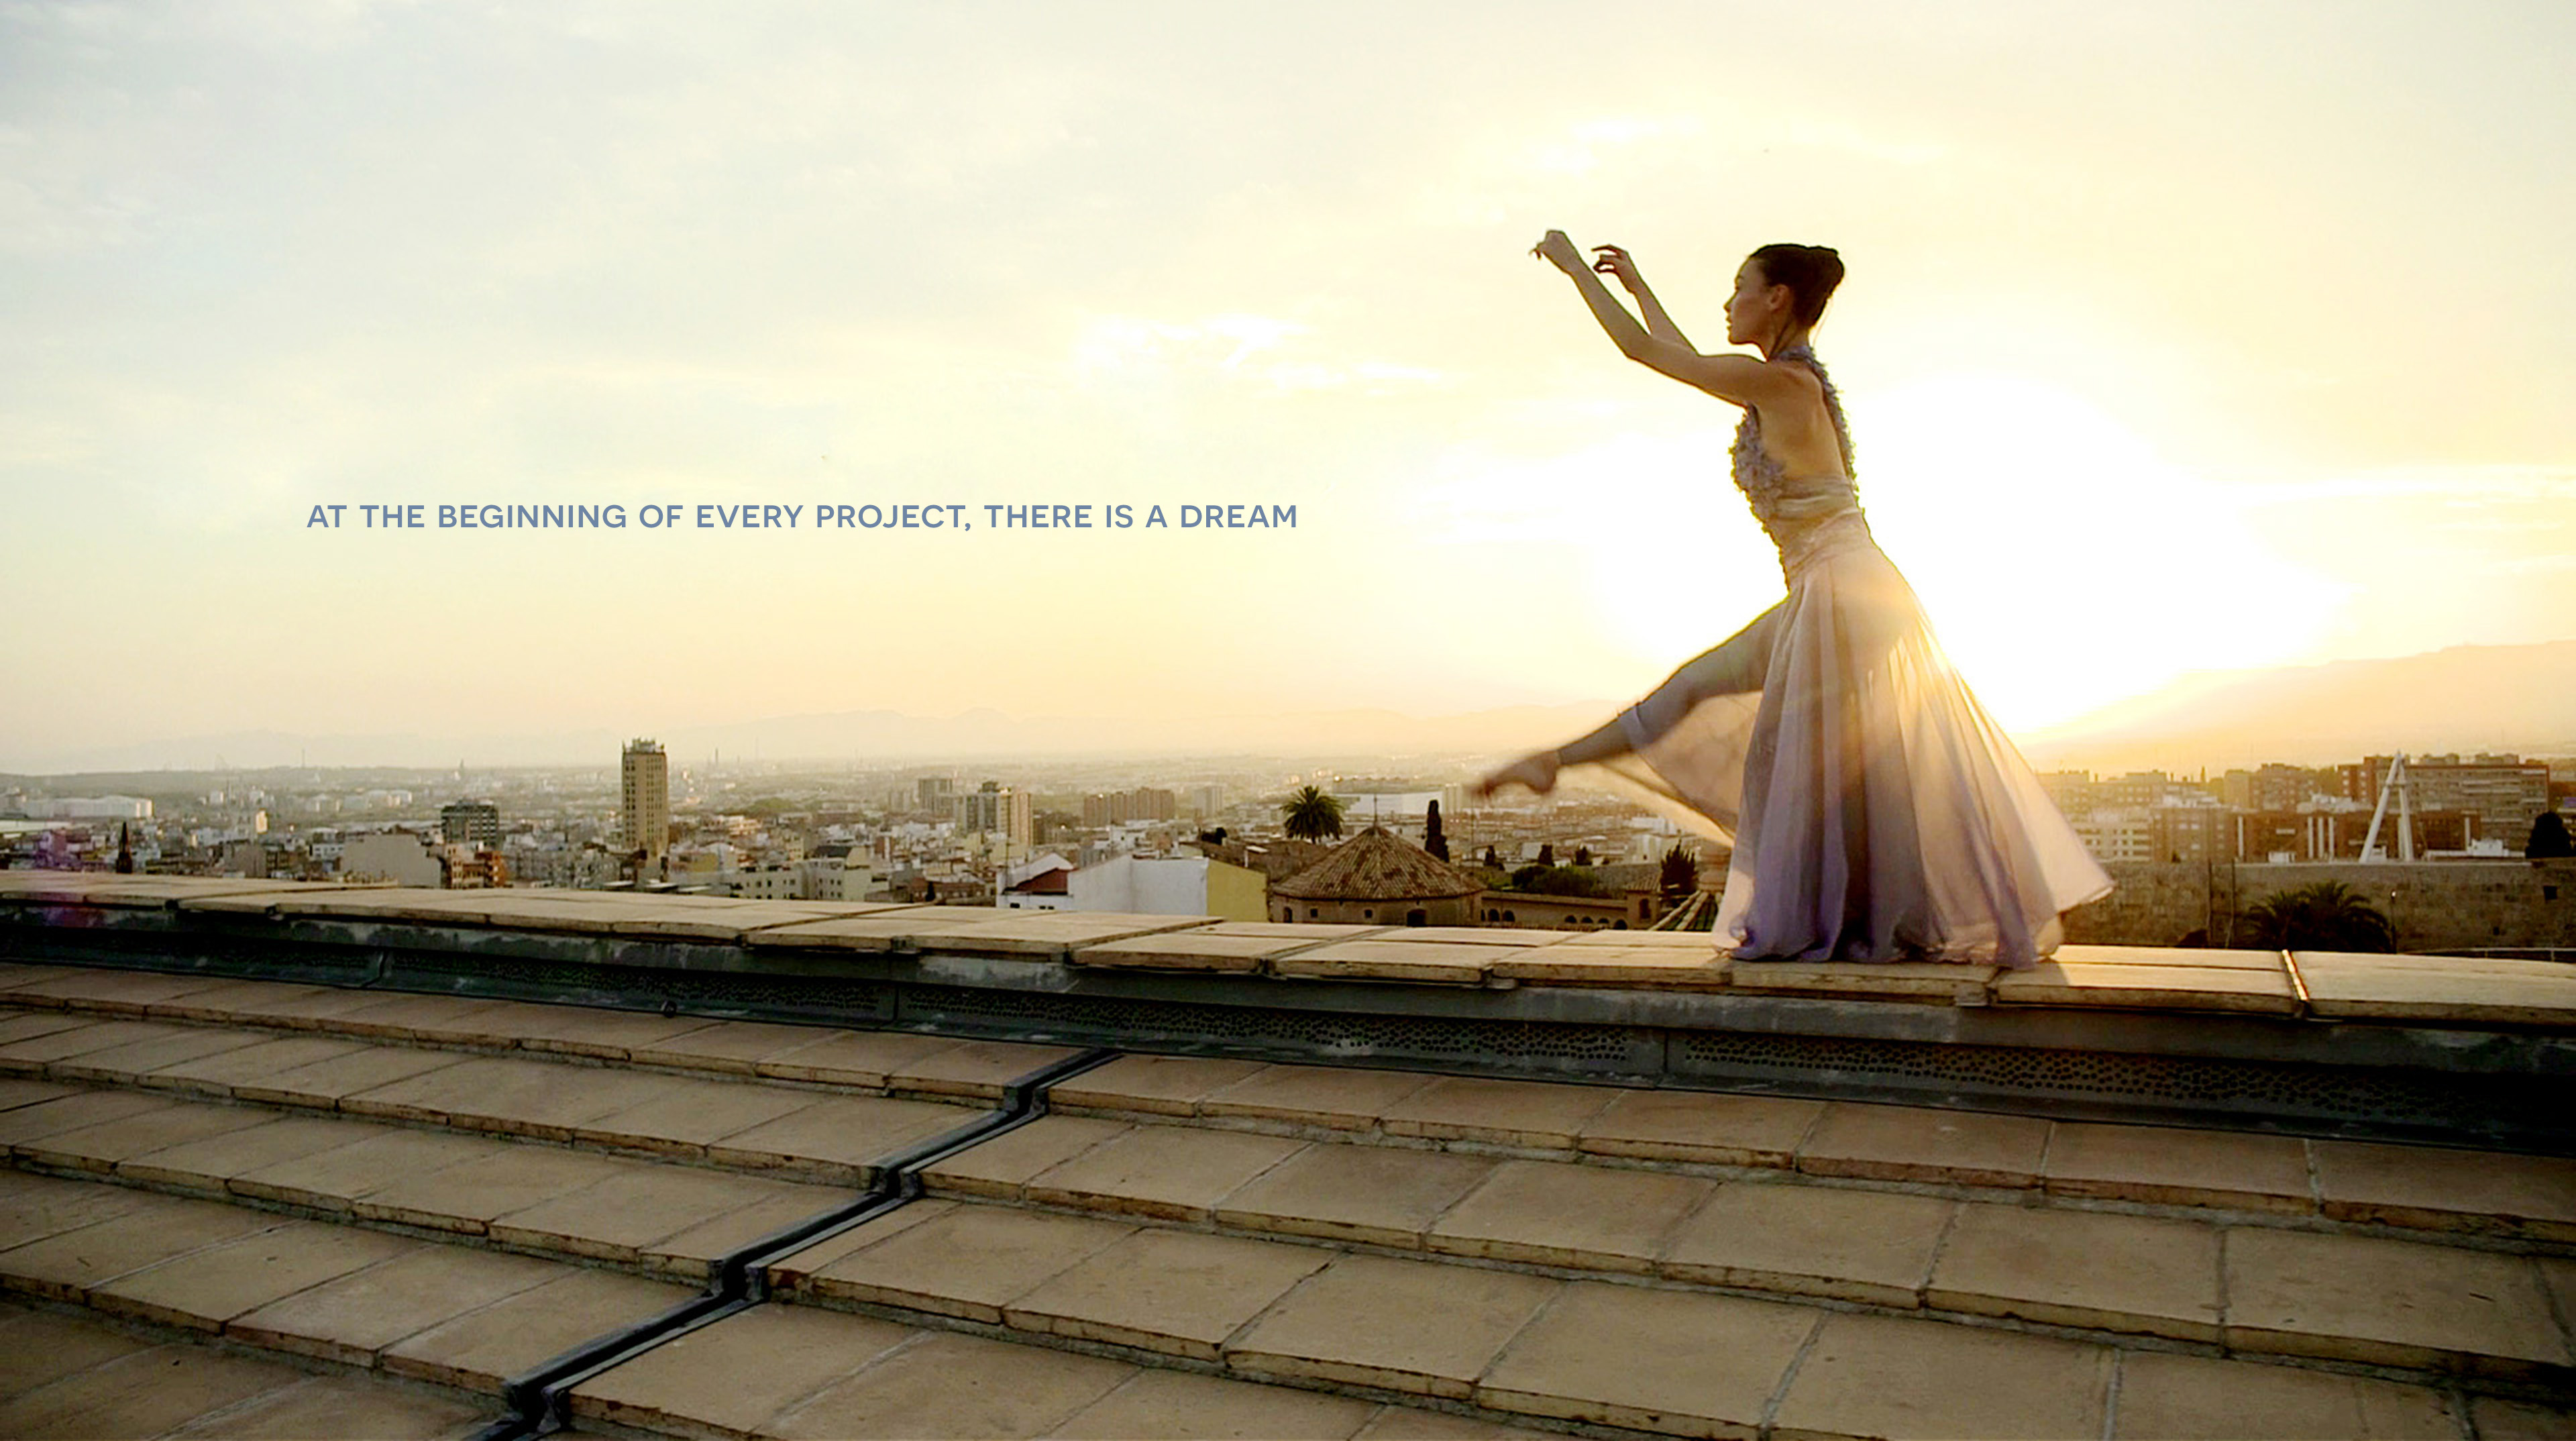 AT THE BEGINNING OF EVERY PROJECT, THERE IS A DREAM